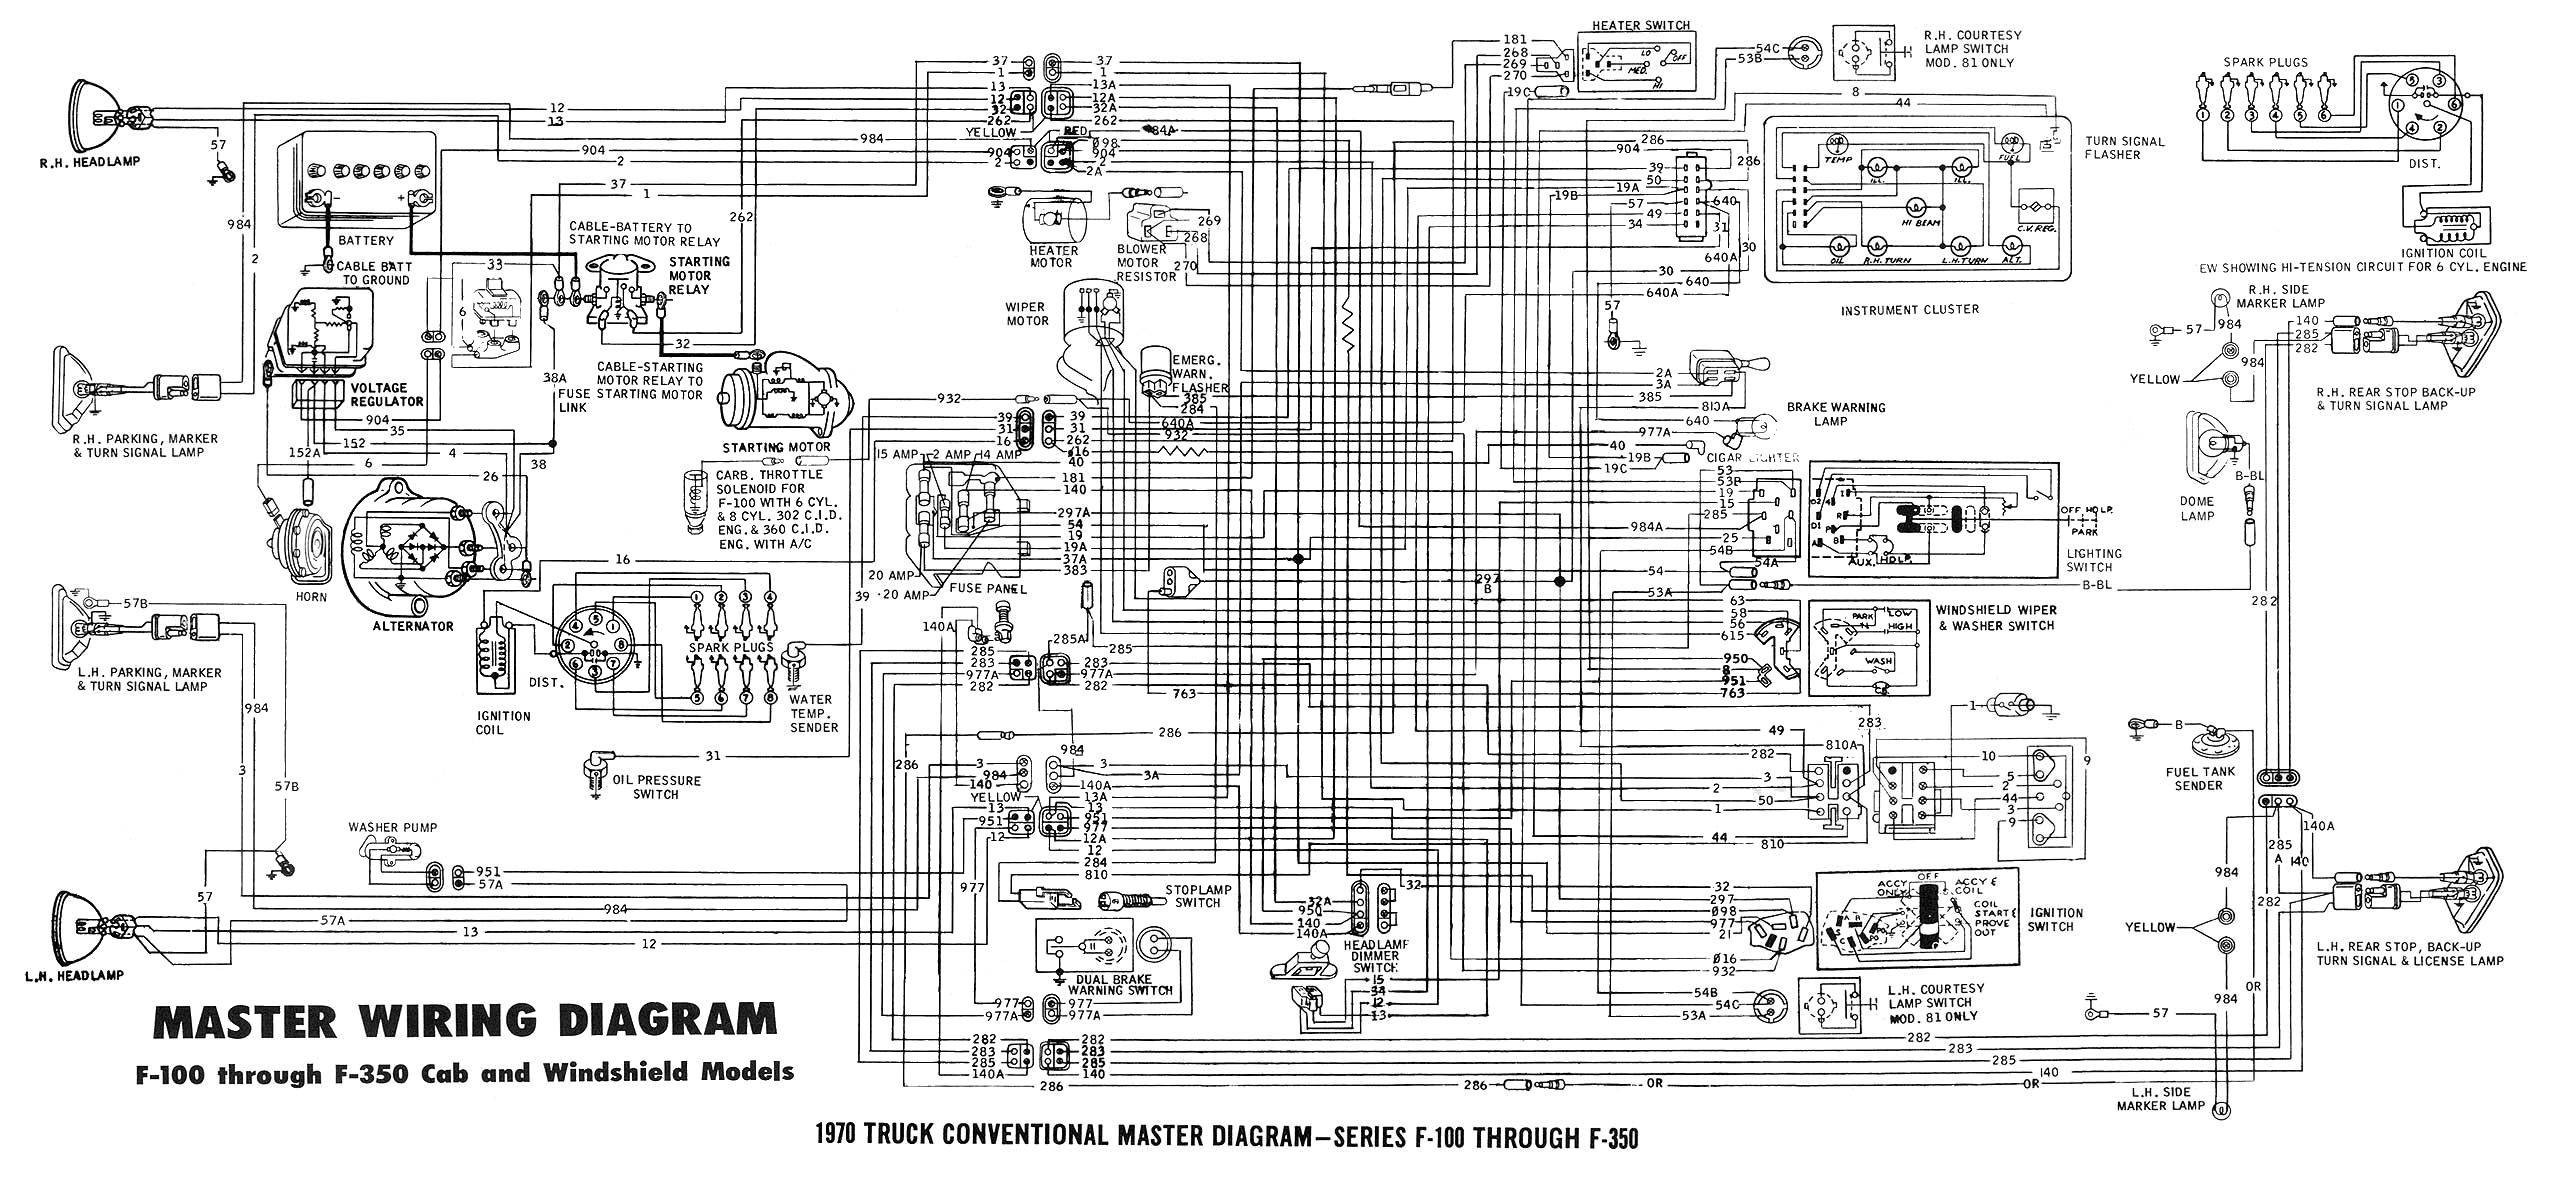 Wiring Diagrams for Trucks 78 Corvette Wiring Diagram Wiring Diagram Of Wiring Diagrams for Trucks